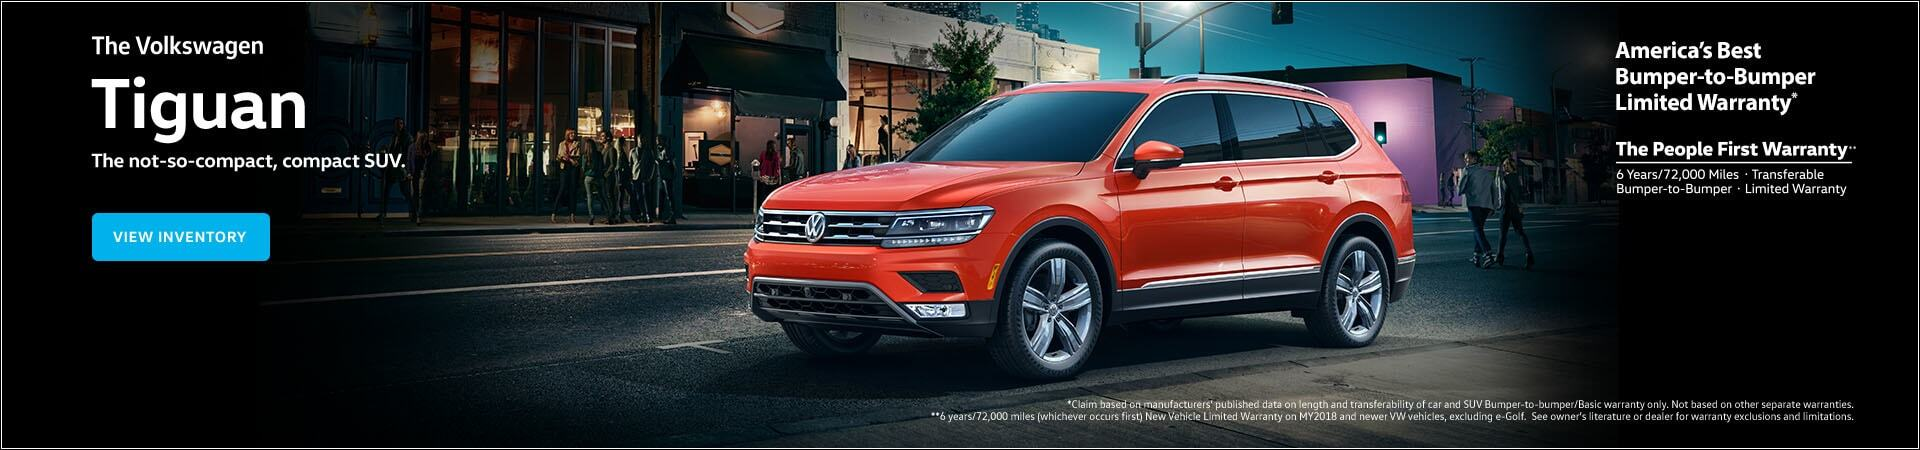 Tiguan Cars.com slide